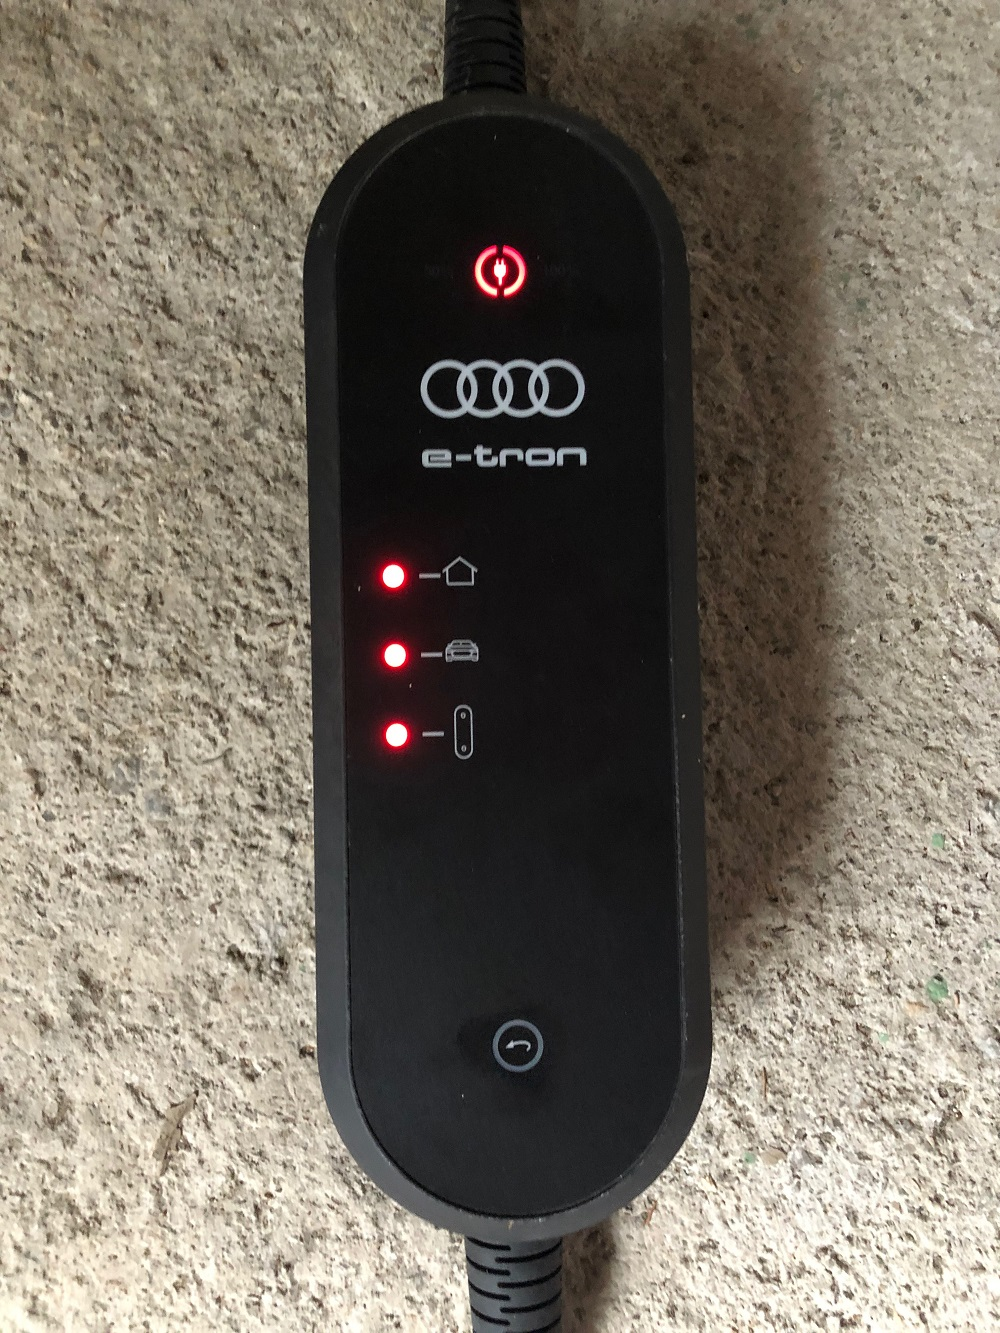 Audi e-tron car charger